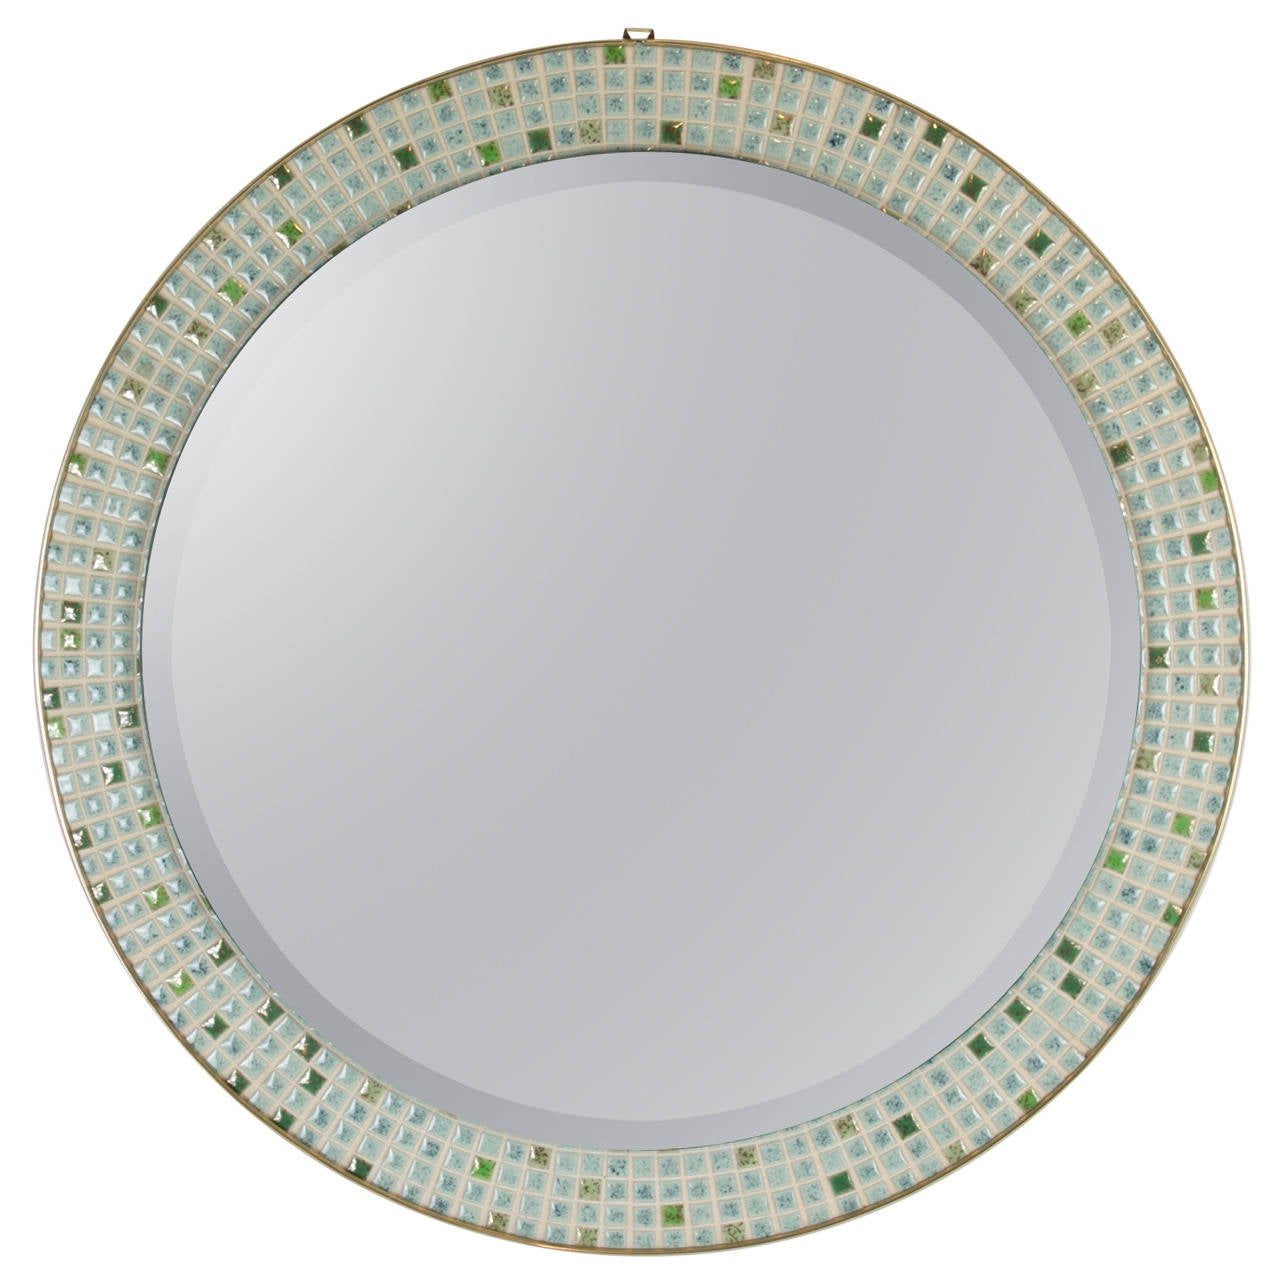 Mid-Century Modern Pastel Colors Ceramic Mosaic Circular Mirror, Spain, 1960s For Sale